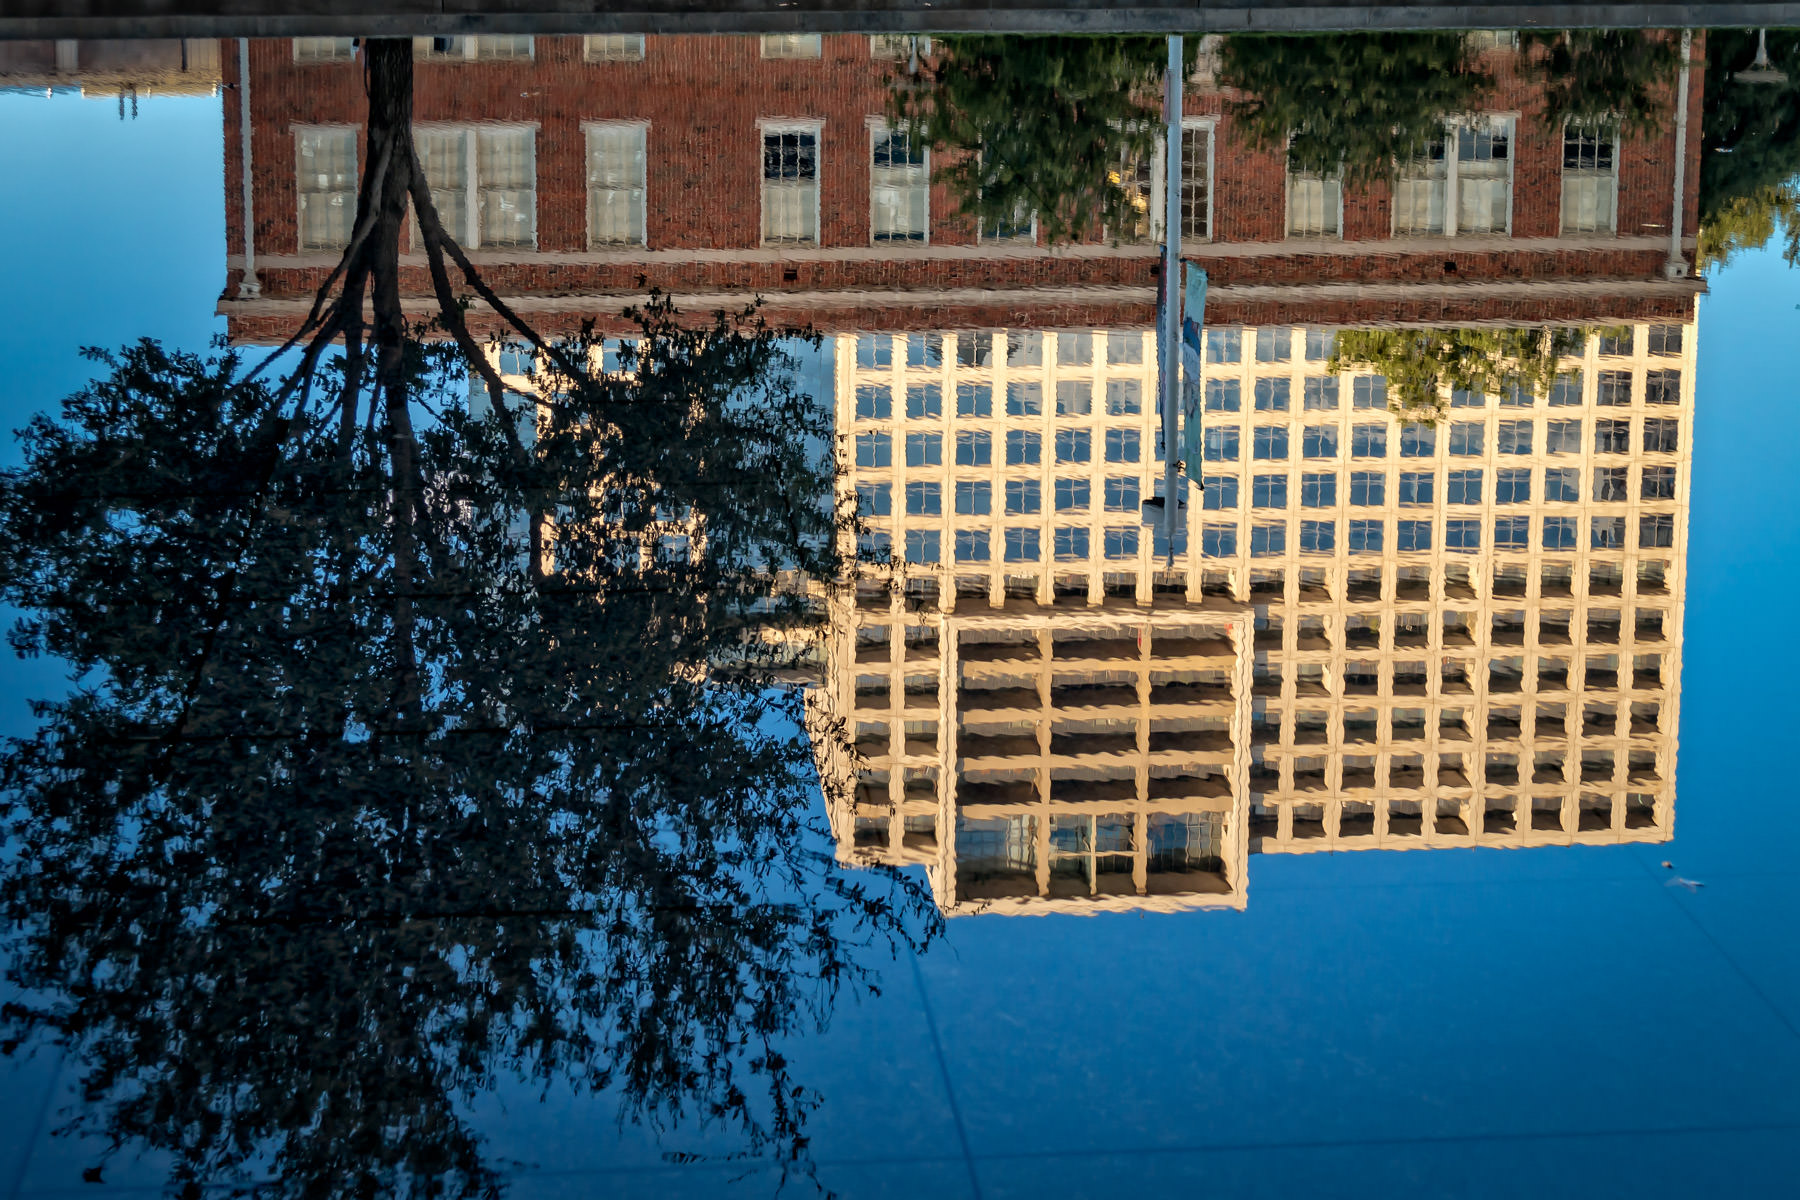 The Dallas Arts District's One Arts Plaza, reflected in the adjacent Winspear Opera House's reflecting pool.